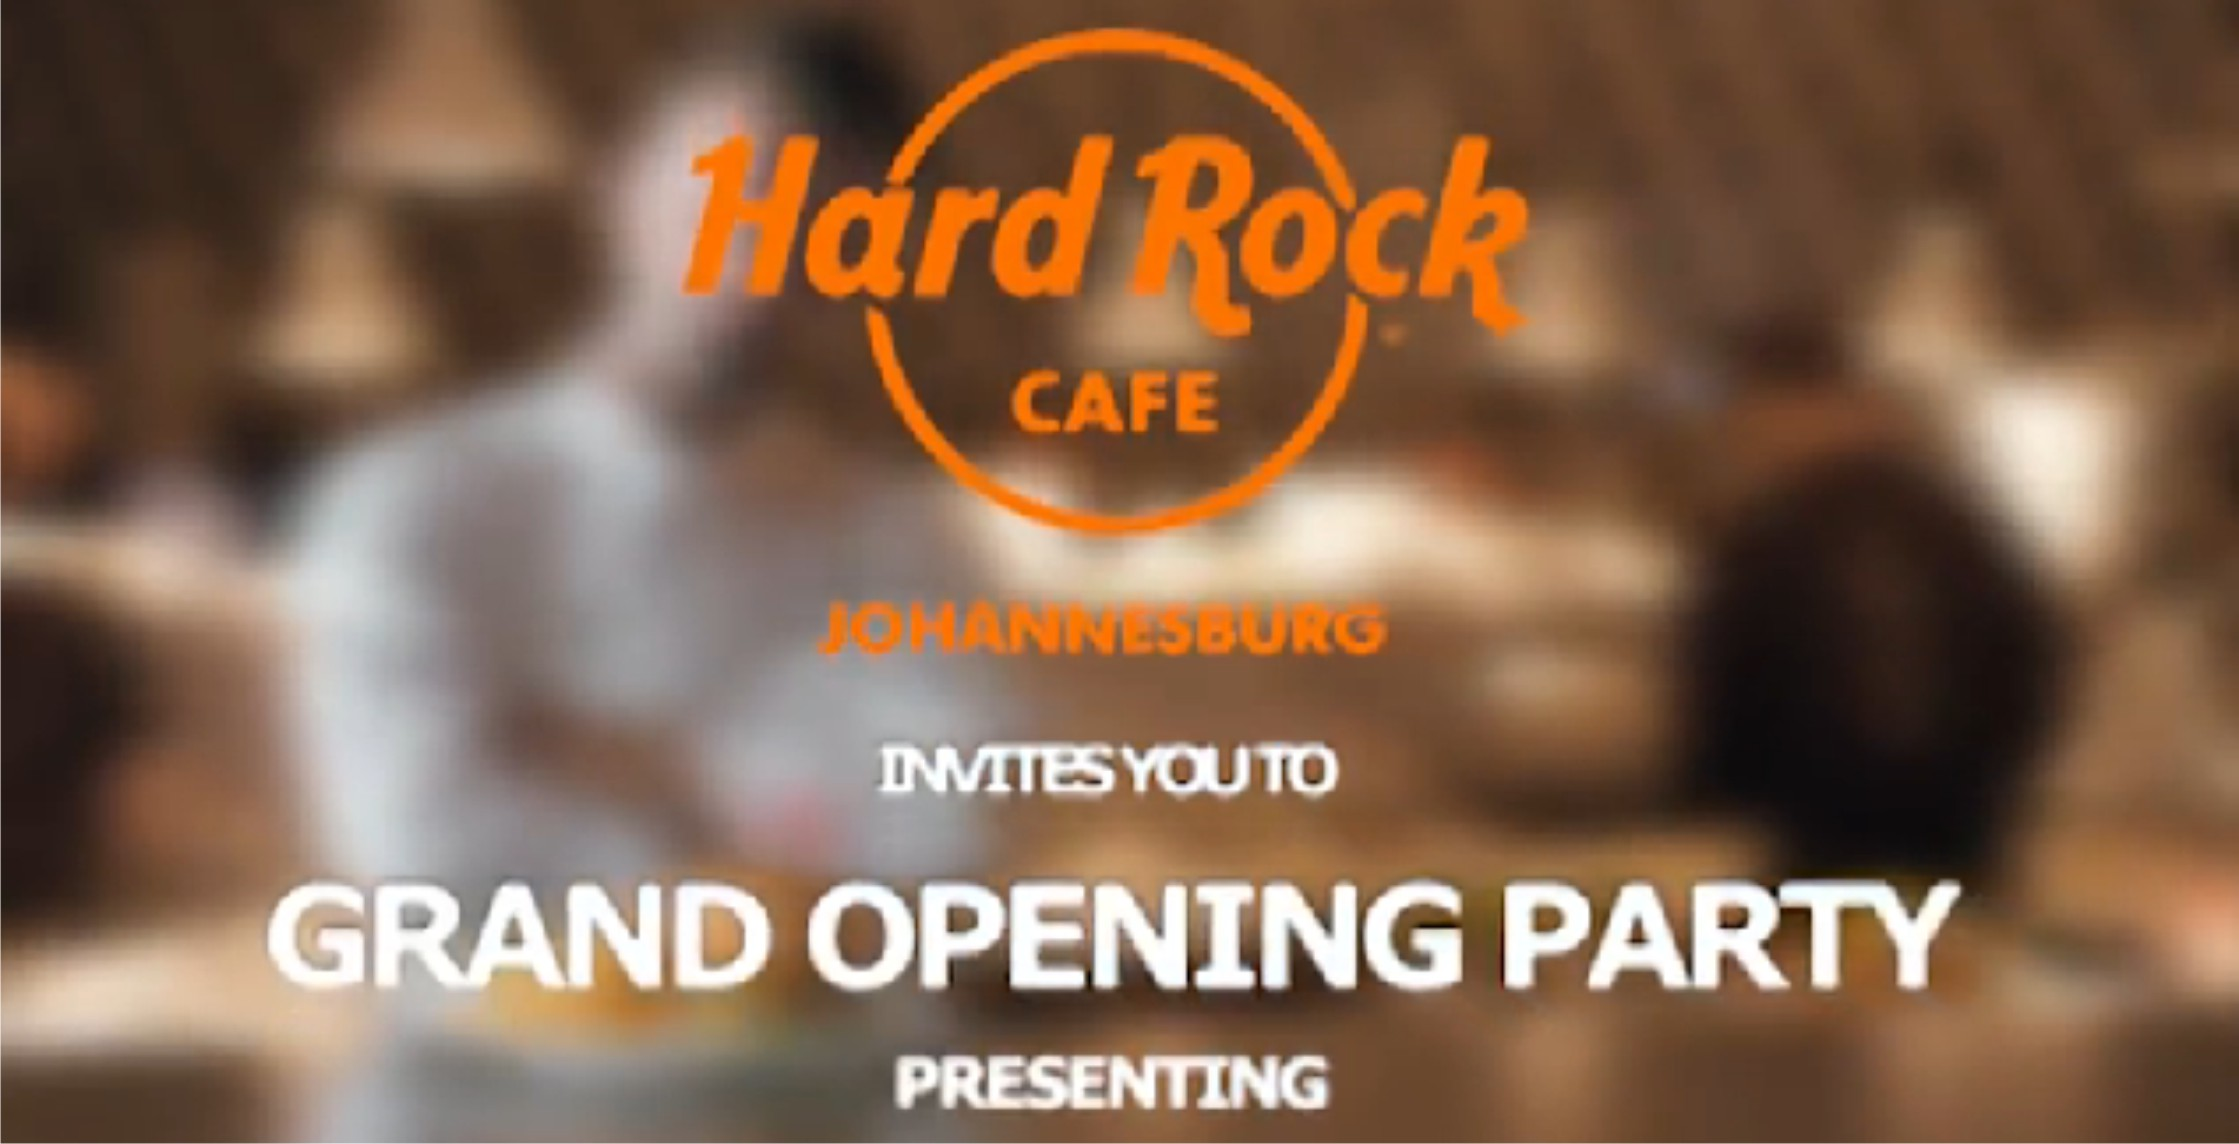 Hard Rock Cafe Johannesburg celebrates its grand opening with a free South African music concert